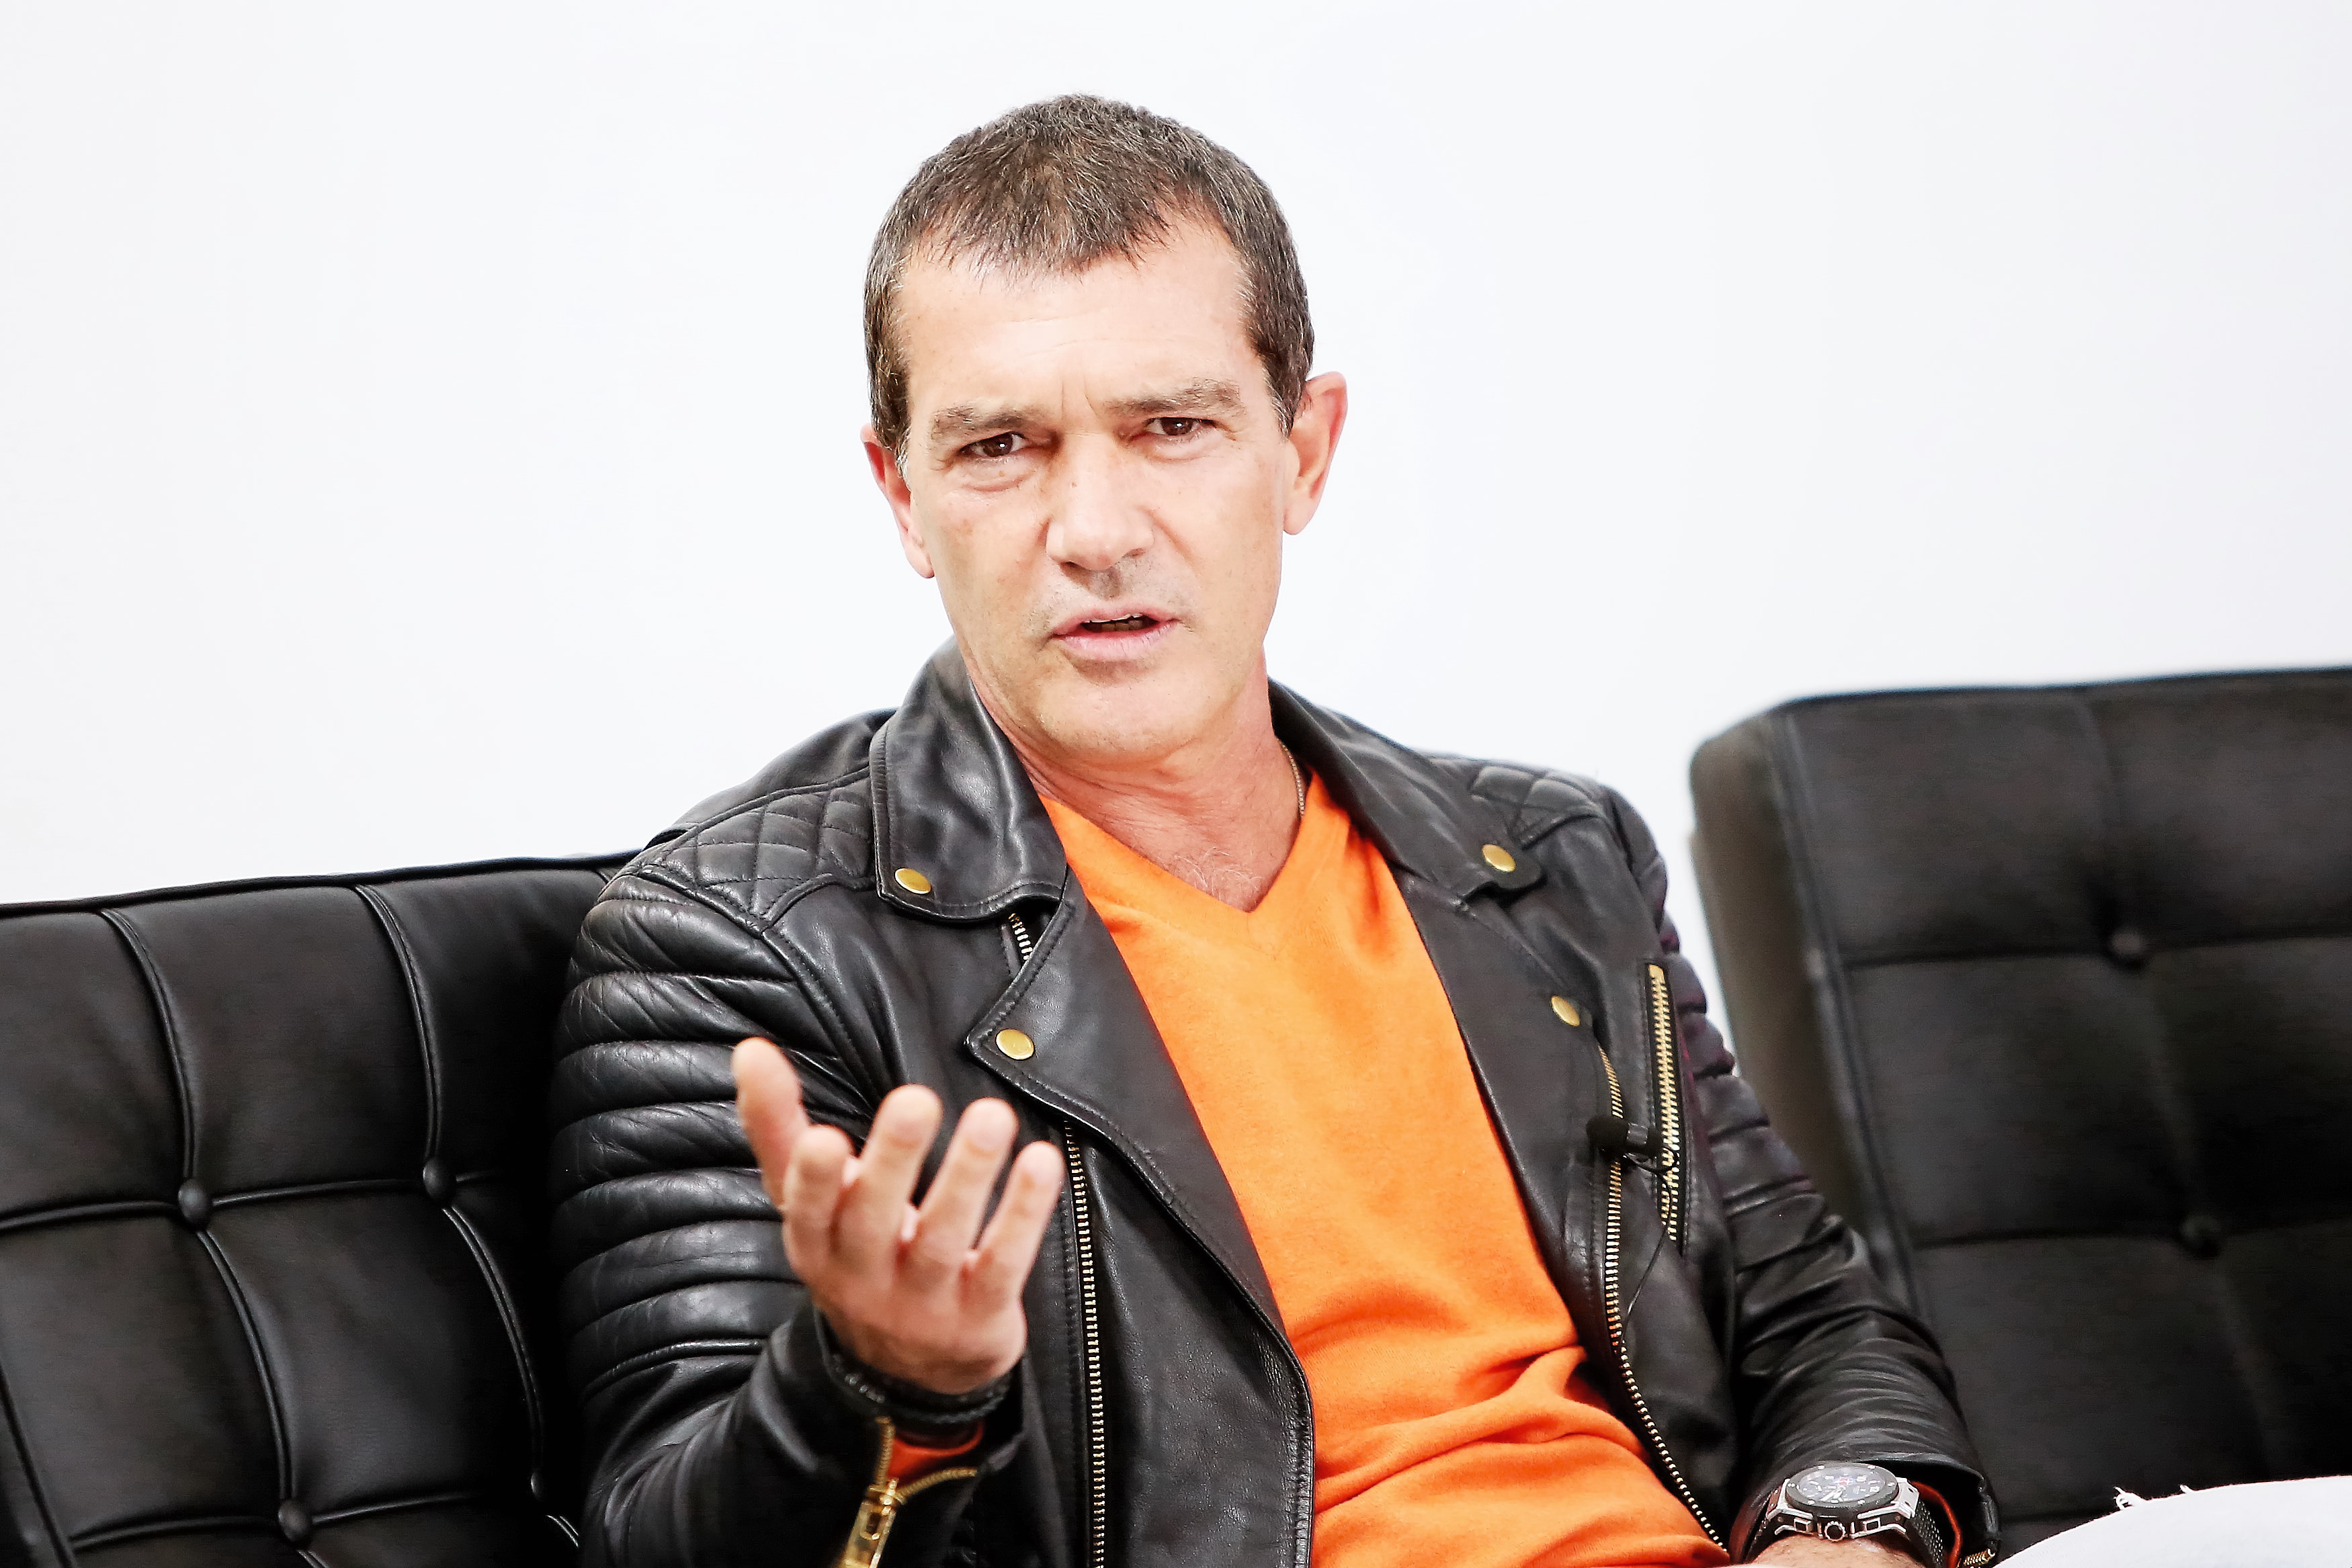 "Spanish actor Antonio Banderas will play Italian designer Gianni Versace in Danish director Bille August's biopic on the man who helped define '90s excess.<br /> <br /> The film will follow Gianni's rise to sartorial stardom in the '70s and touch on his relationship with Donatella.<br /> <br /> ""I've always love Antonio Banderas as an actor and as a man; he's very passionate about this project,"" said August, according to film bible Variety.<br /> <br /> The director has been in touch with the Versace family about the project.<br /> <br /> This is not the only fashion film in the pipeline with Jack O'Connell set to star in a film on the tragic life of Alexander McQueen and another Versace saga slated for television screens from <em>American Horror Story</em> producer Ryan Murphy.<br /> <br /> Here's a look at actors who have upgraded their wardrobes from off-the-rack to off-the-runway."